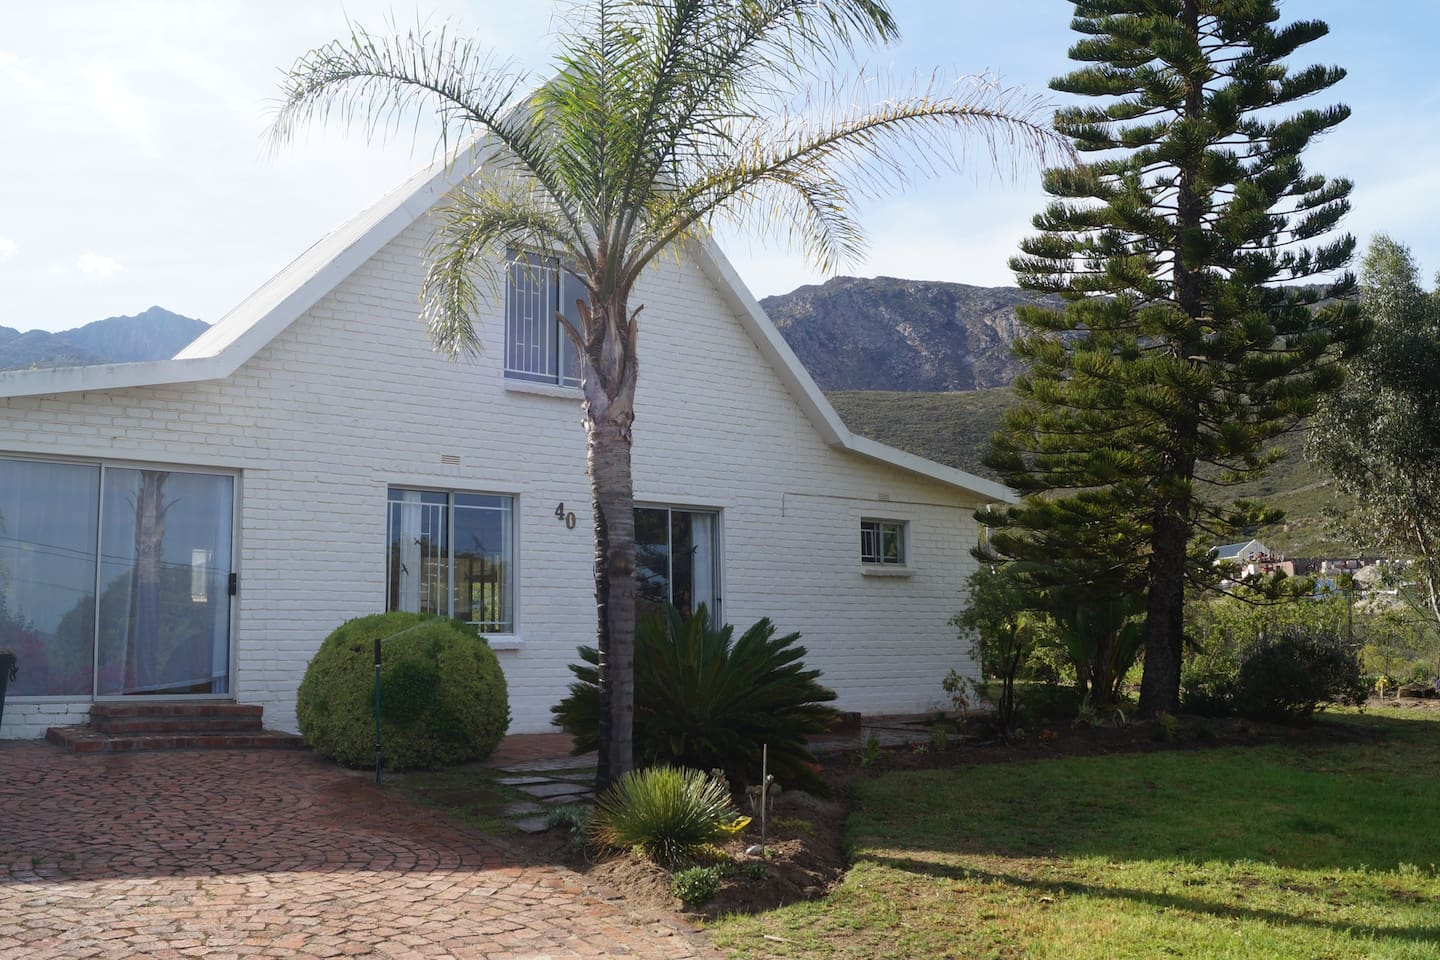 White Lily is surrounded by mountains and uninterrupted views. There is a big garden with lots of tortoises as this area is the breeding ground for them. Upstairs is the main bedroom window, with stunning views of the town and Langeberg mountains.